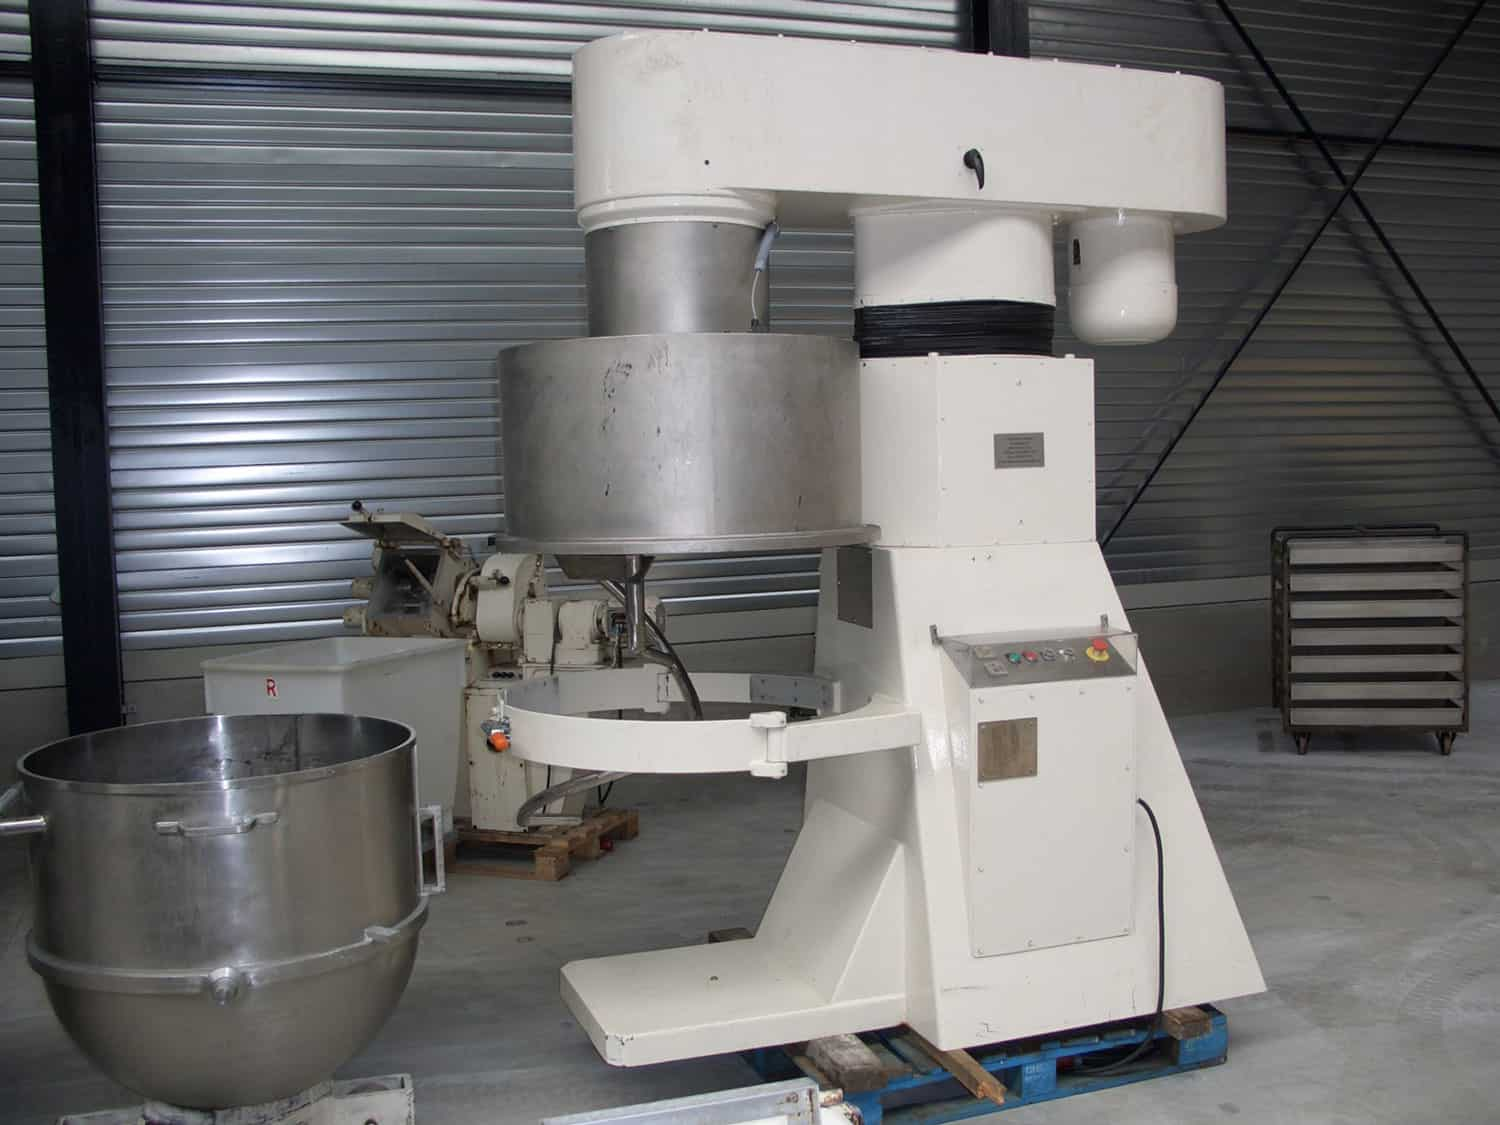 Planetary mixer 450 ltr - Tonnaer Mixing Systems